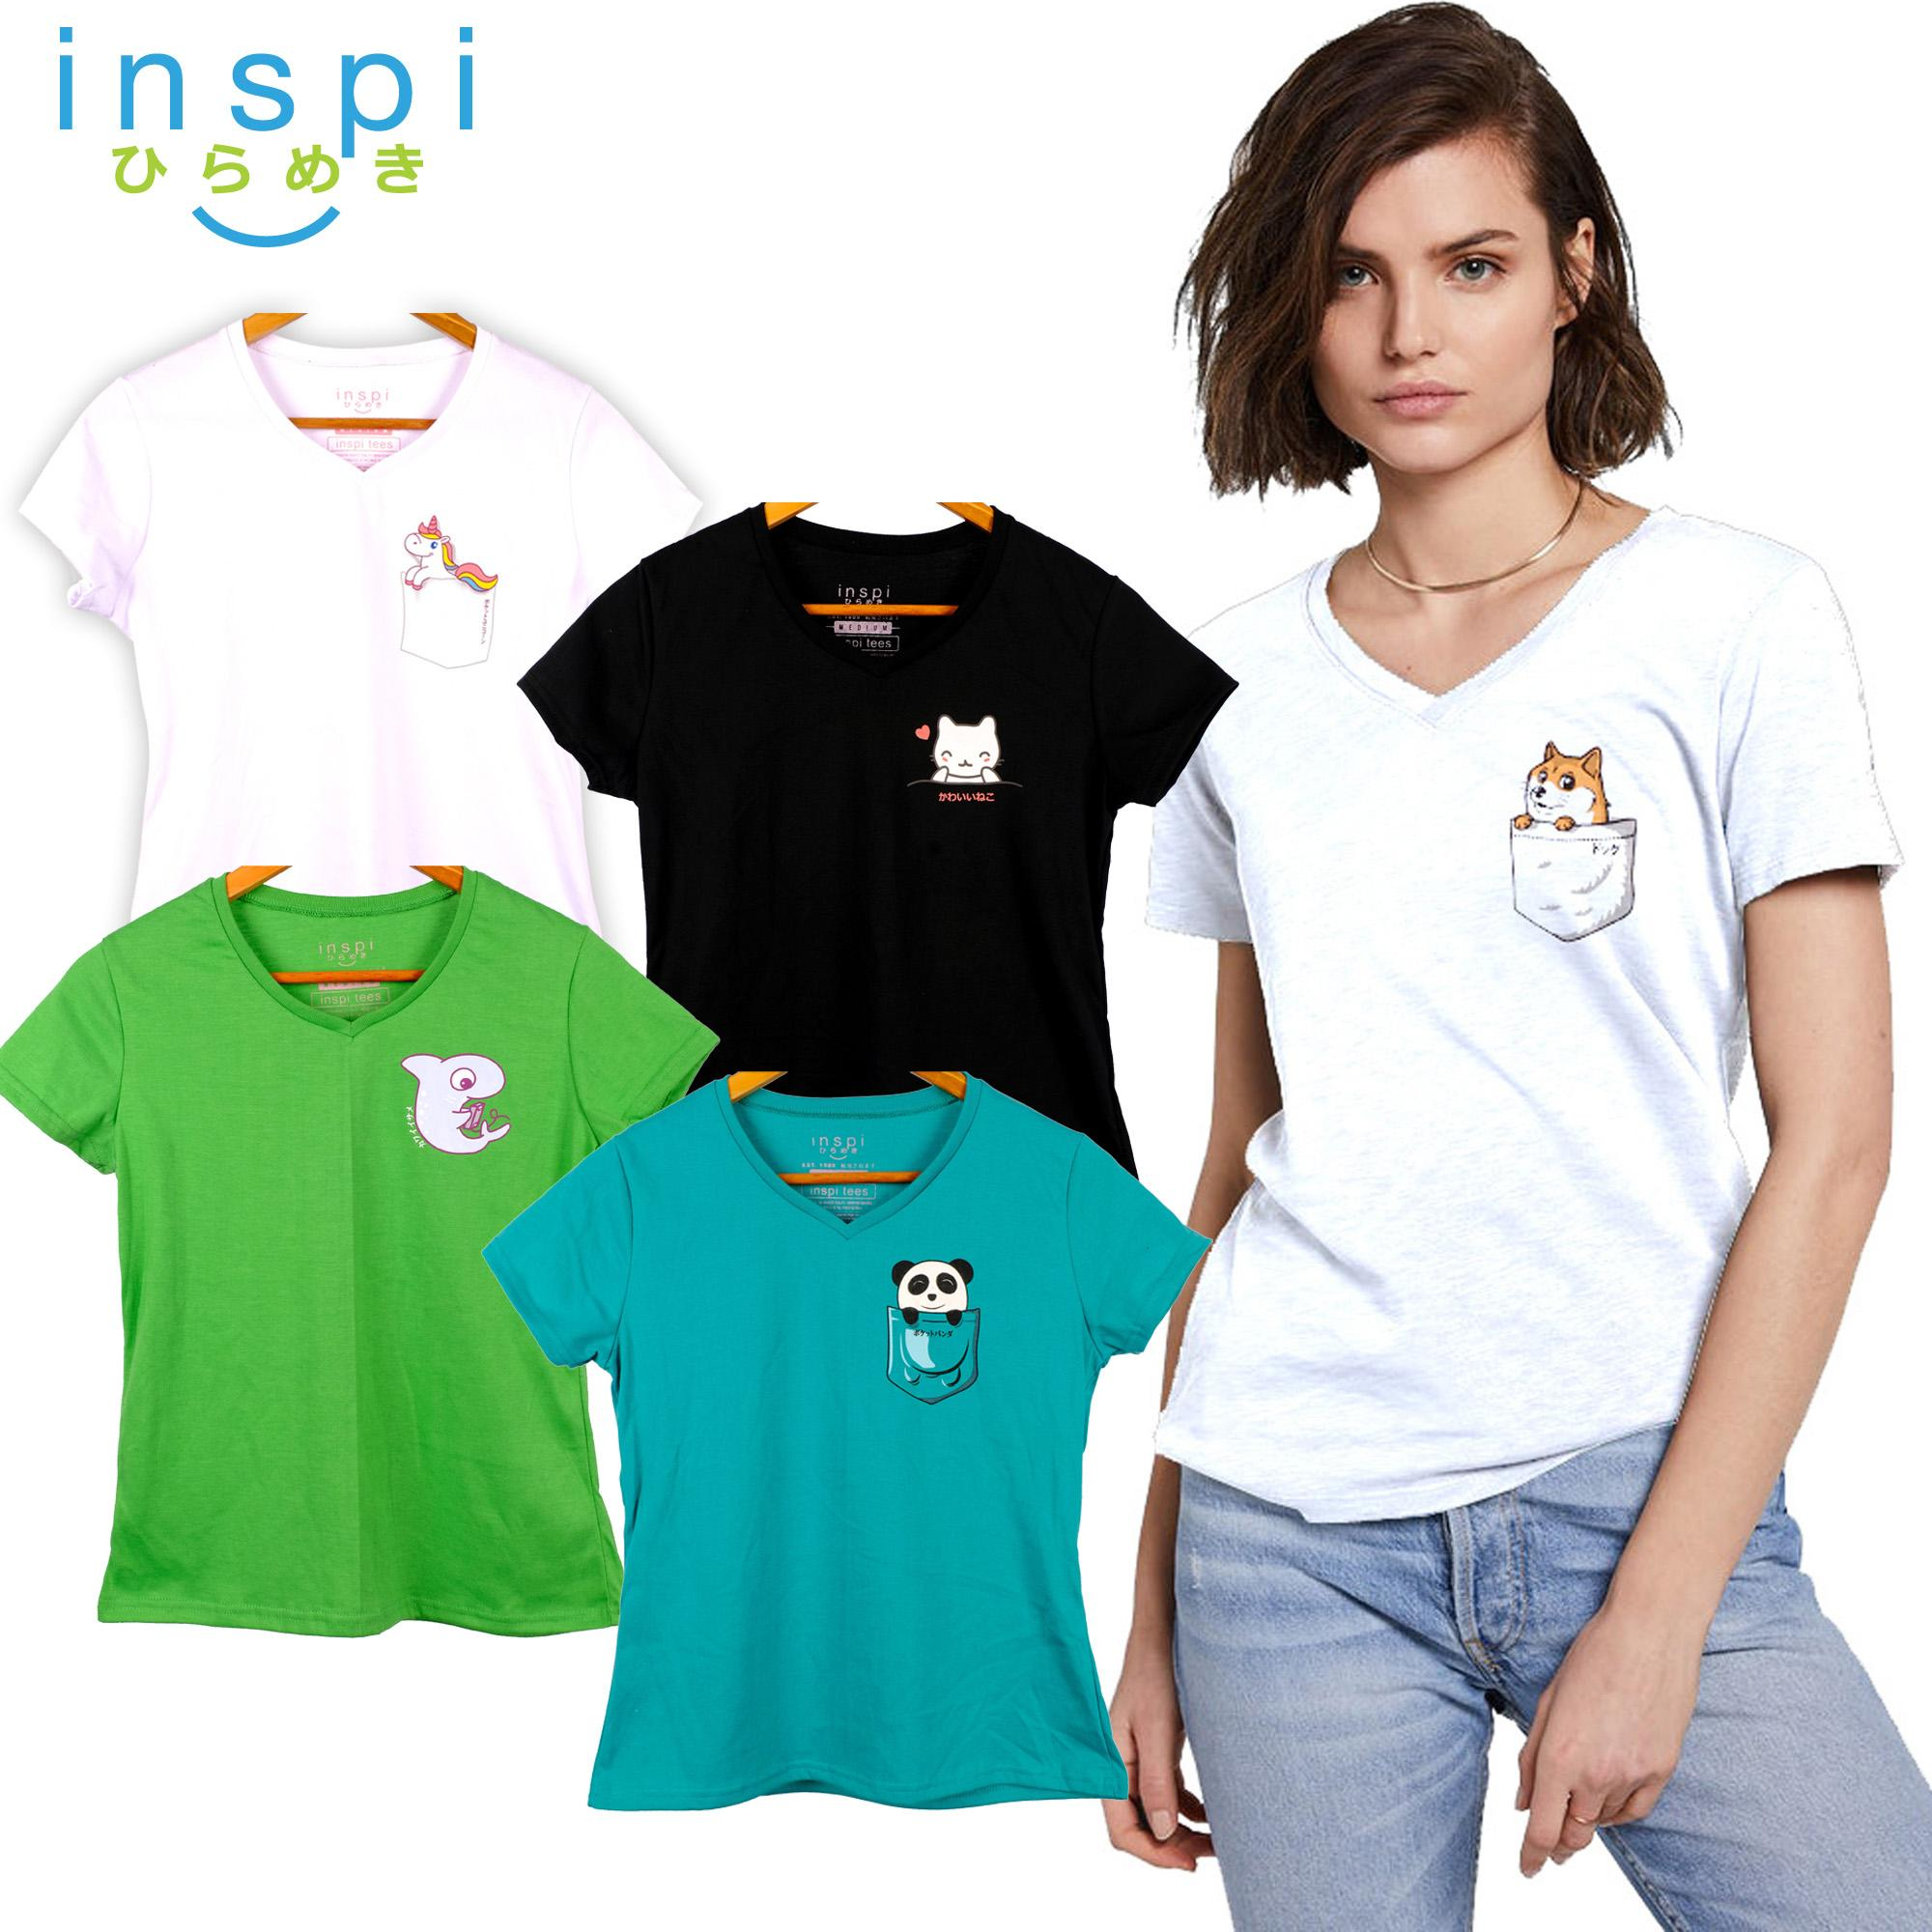 12ccdca9 INSPI Tees Ladies Semi Fit Pocket Friends Collection tshirt printed graphic tee  t shirt shirts tshirts